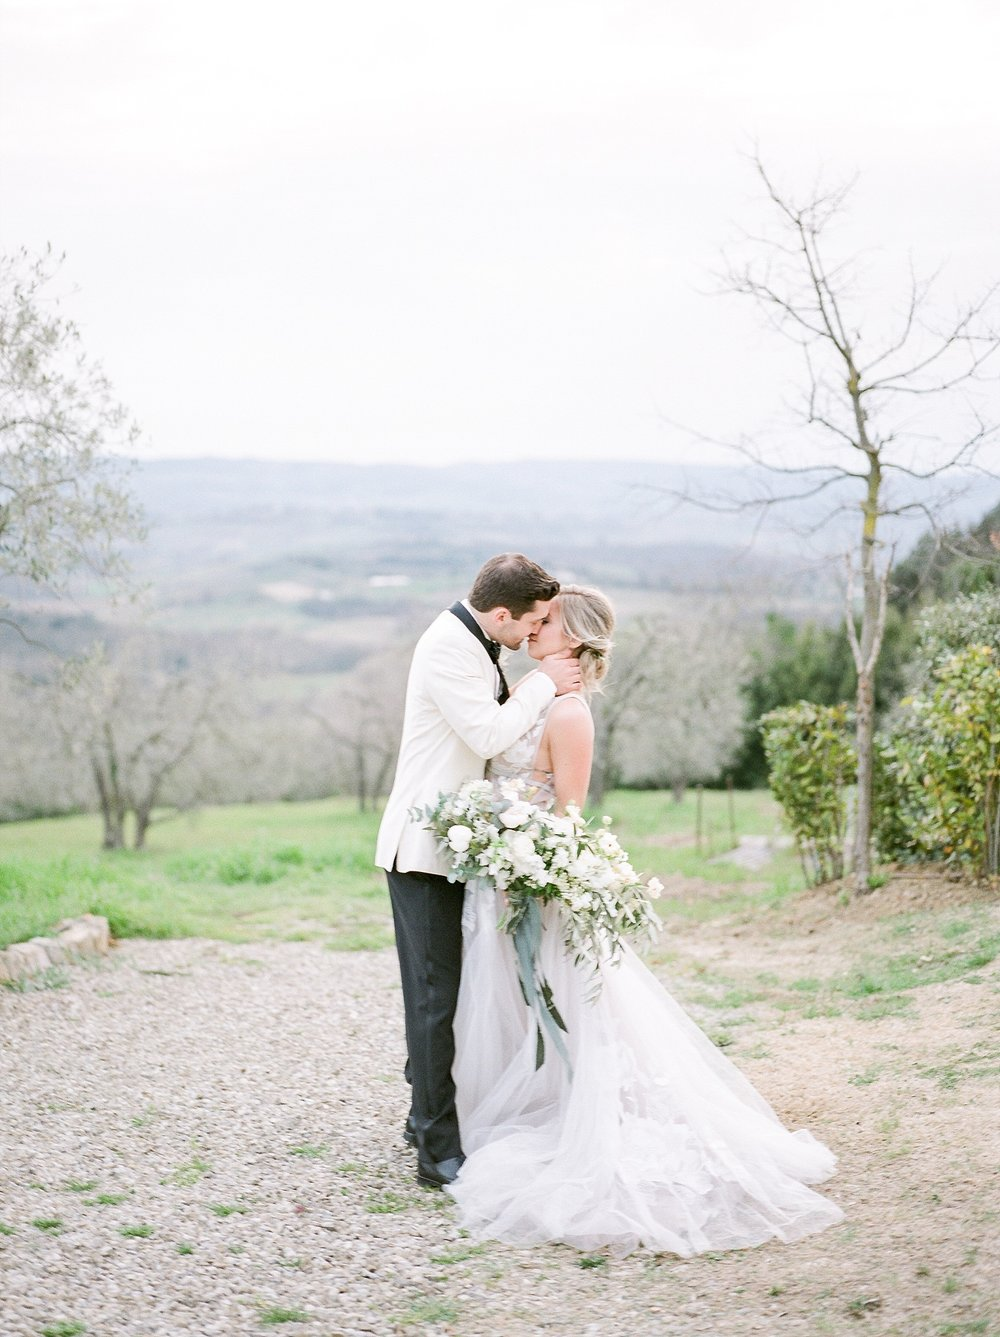 All White Destination Wedding in the Hills of Tuscany Italy at Estate Borgo Petrognano by Kelsi Kliethermes Photography_0064.jpg